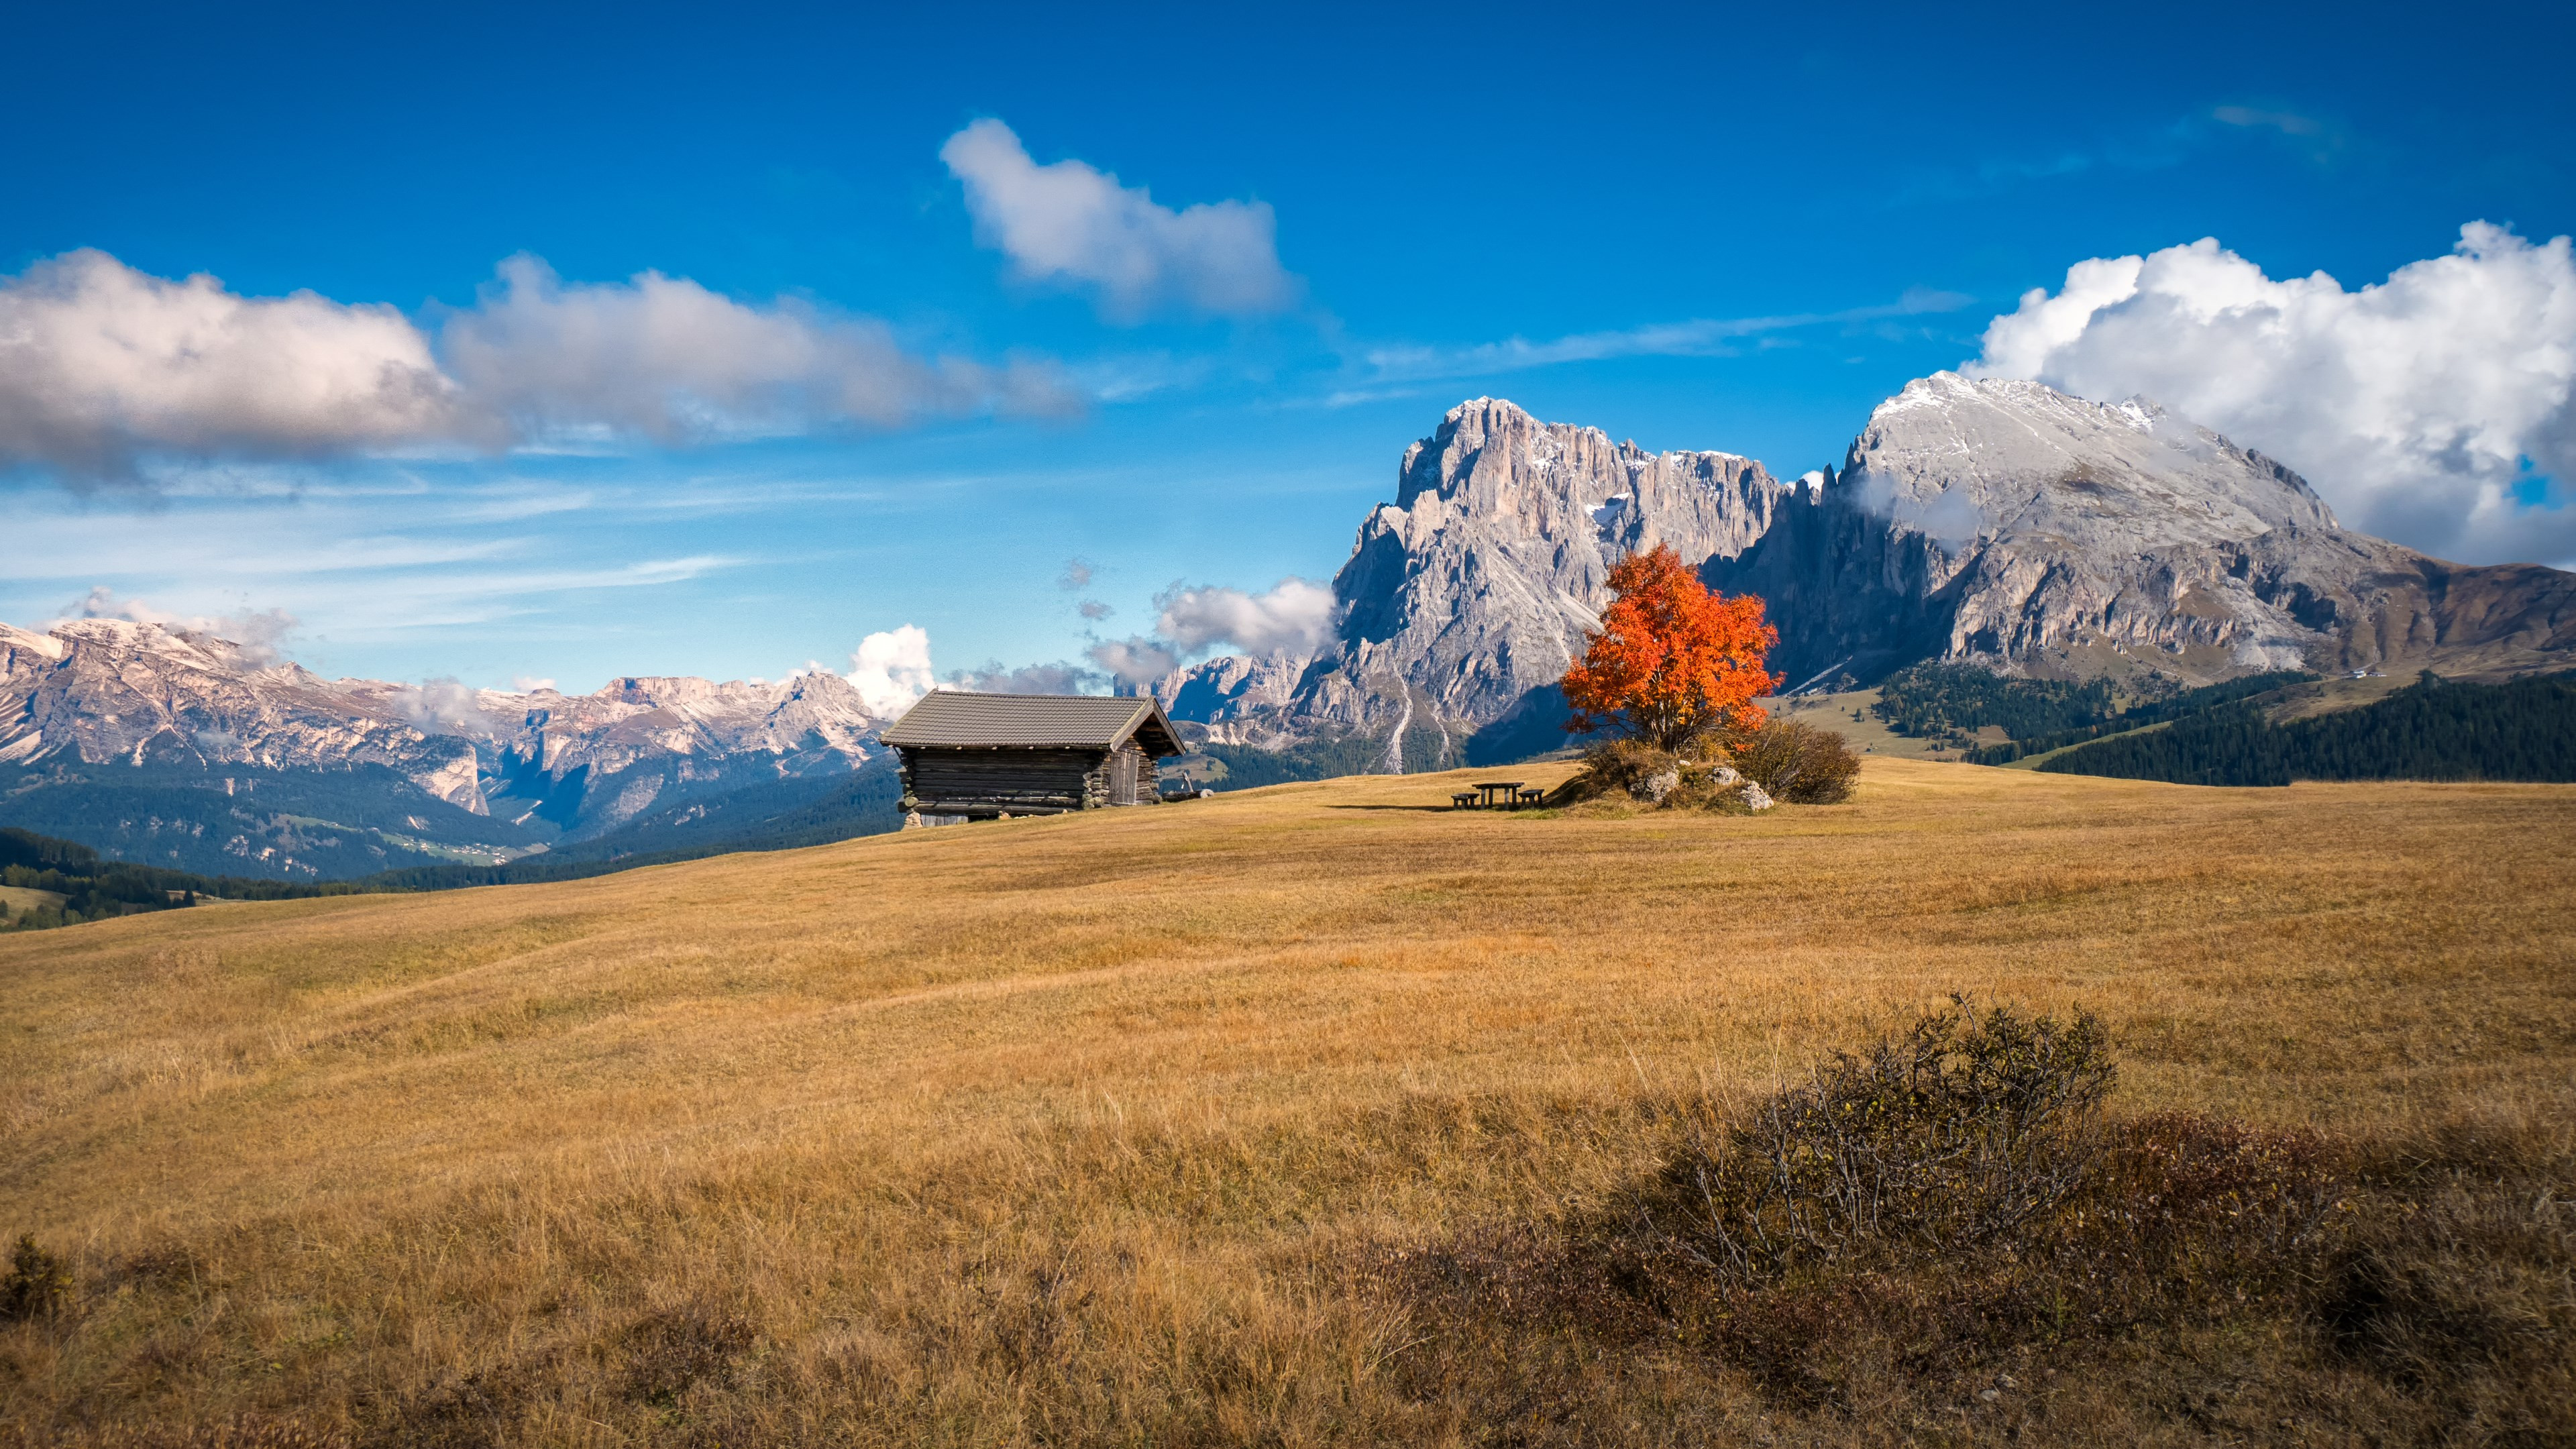 Download Wallpaper Perfect Autumn Landscape From South